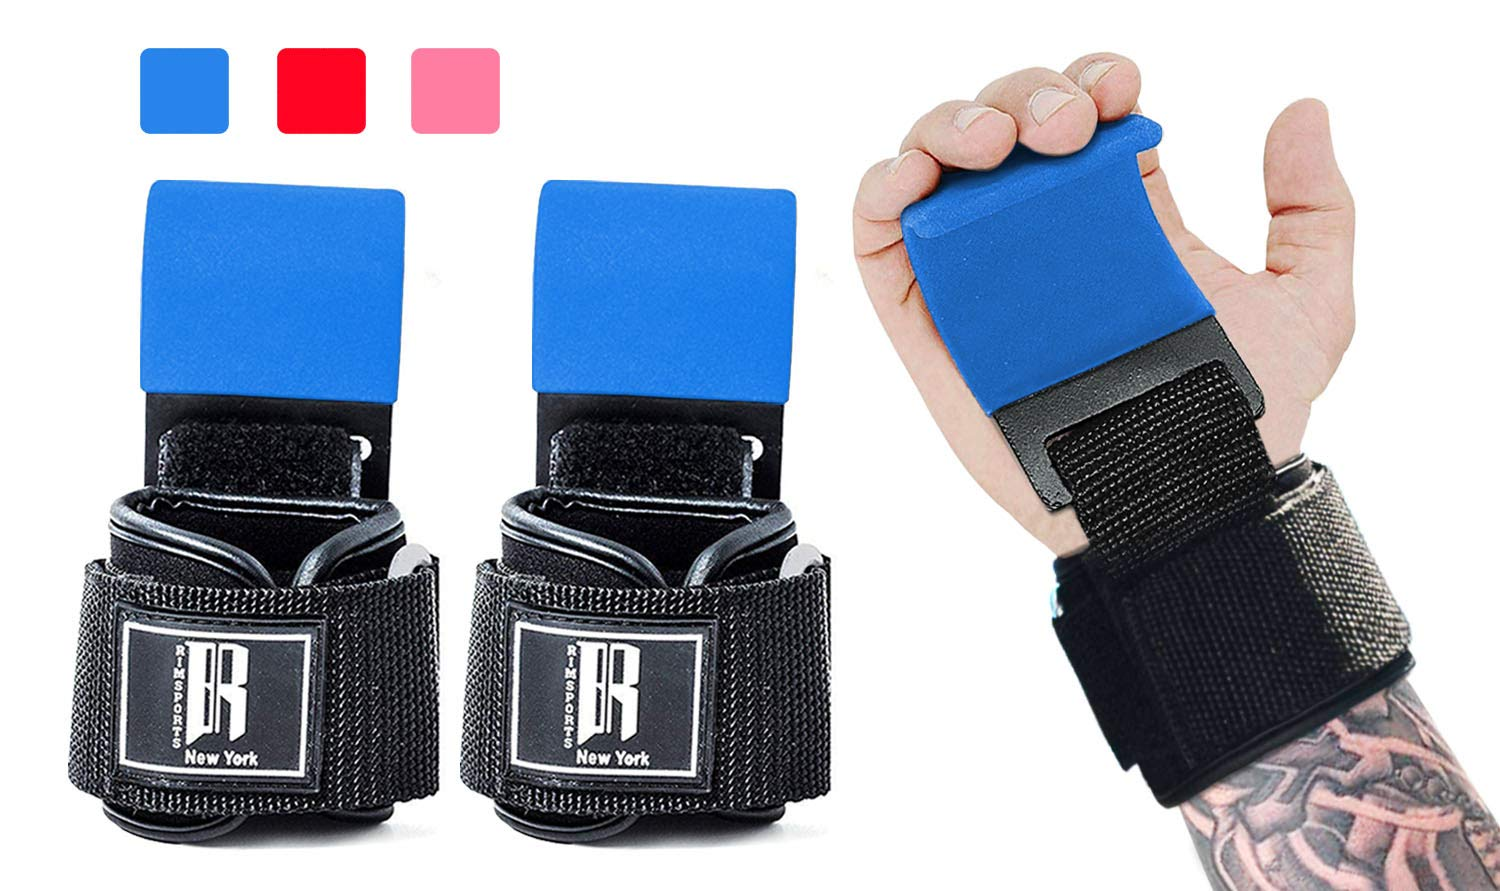 Weight Lifting Hooks Heavy Duty -Lifting Wrist Straps for Pull-ups - Deadlift Straps for Power Lifting - Weight Training Grips & Workout Straps for Weightlifting -Gym Gloves for Men & Women (Blue)